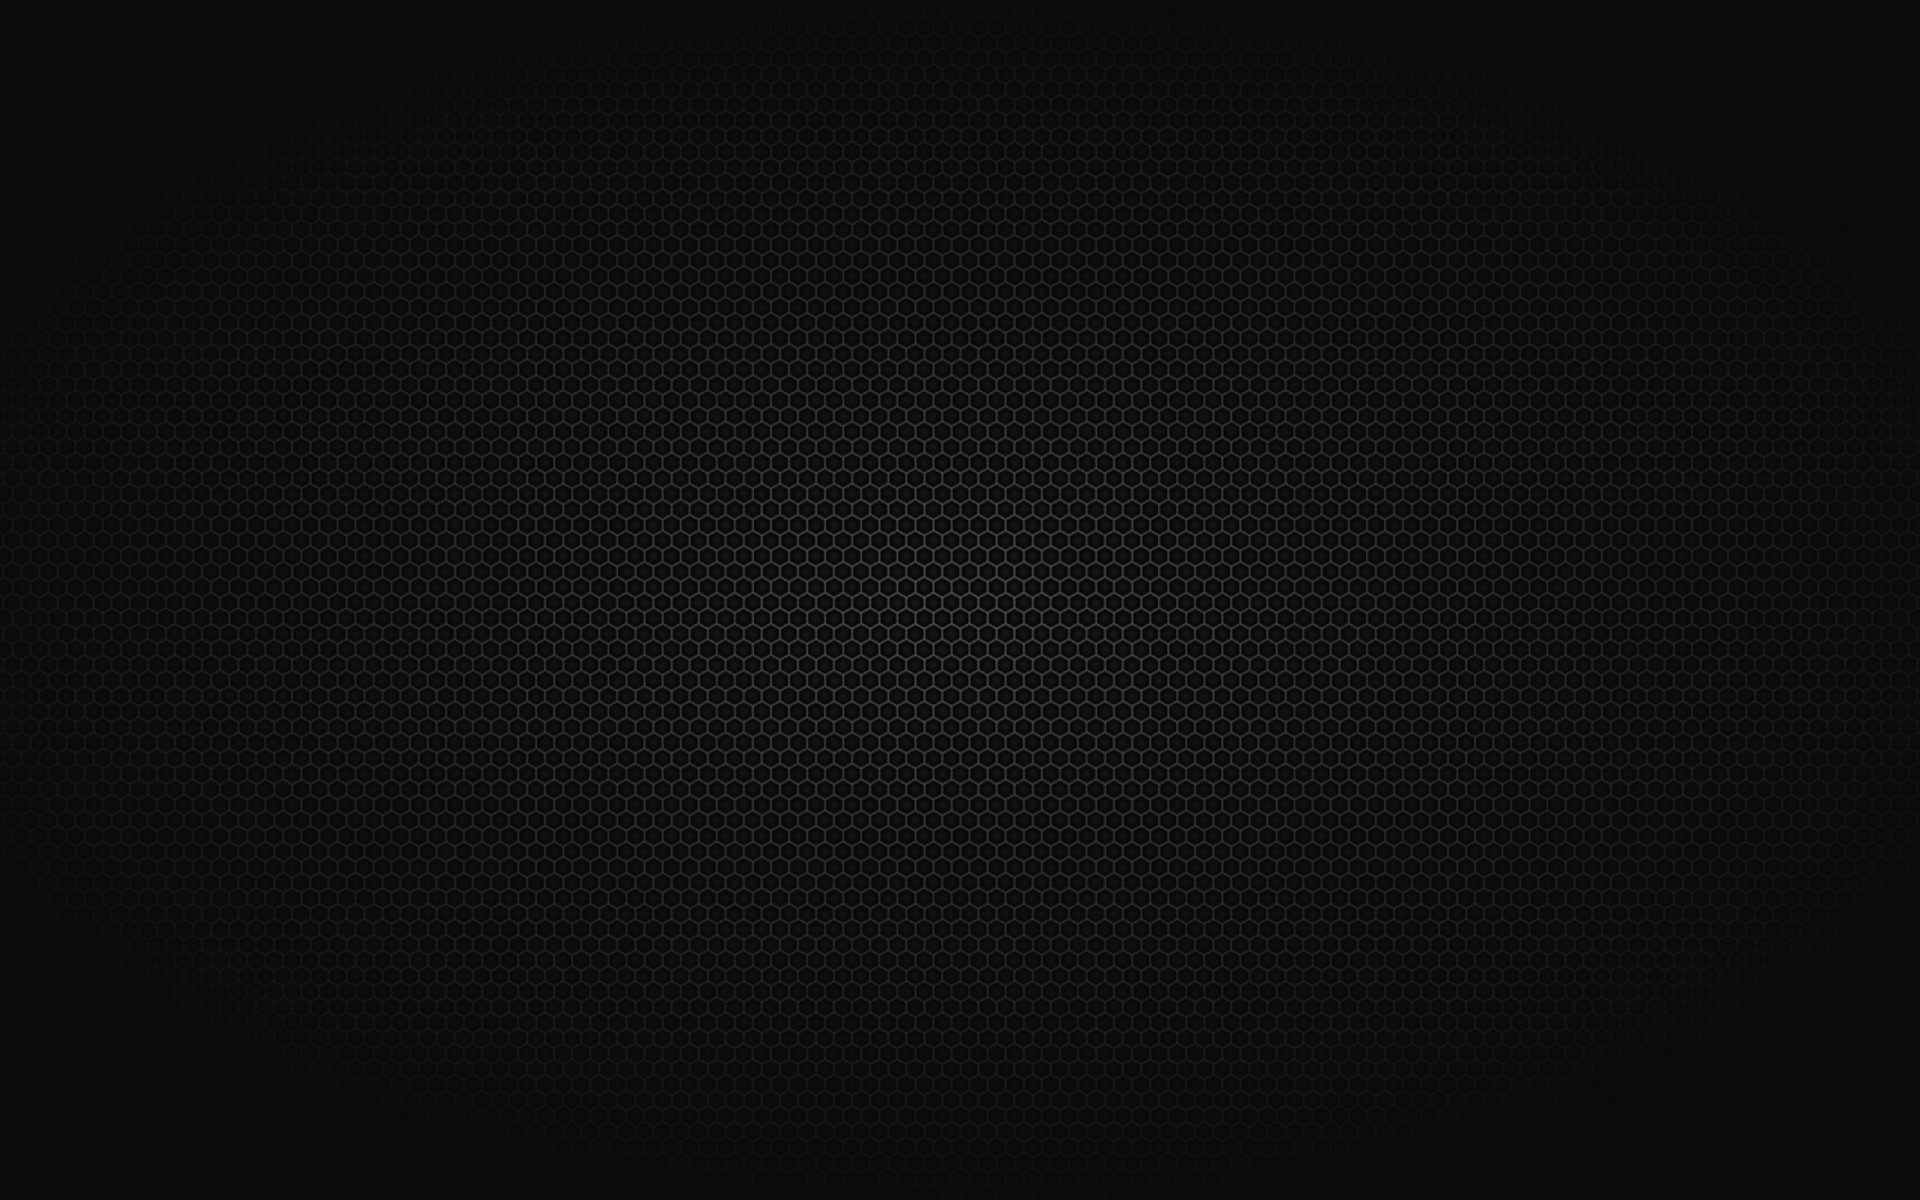 wallpaper nothing related with wow resolution 1920×1080 background .